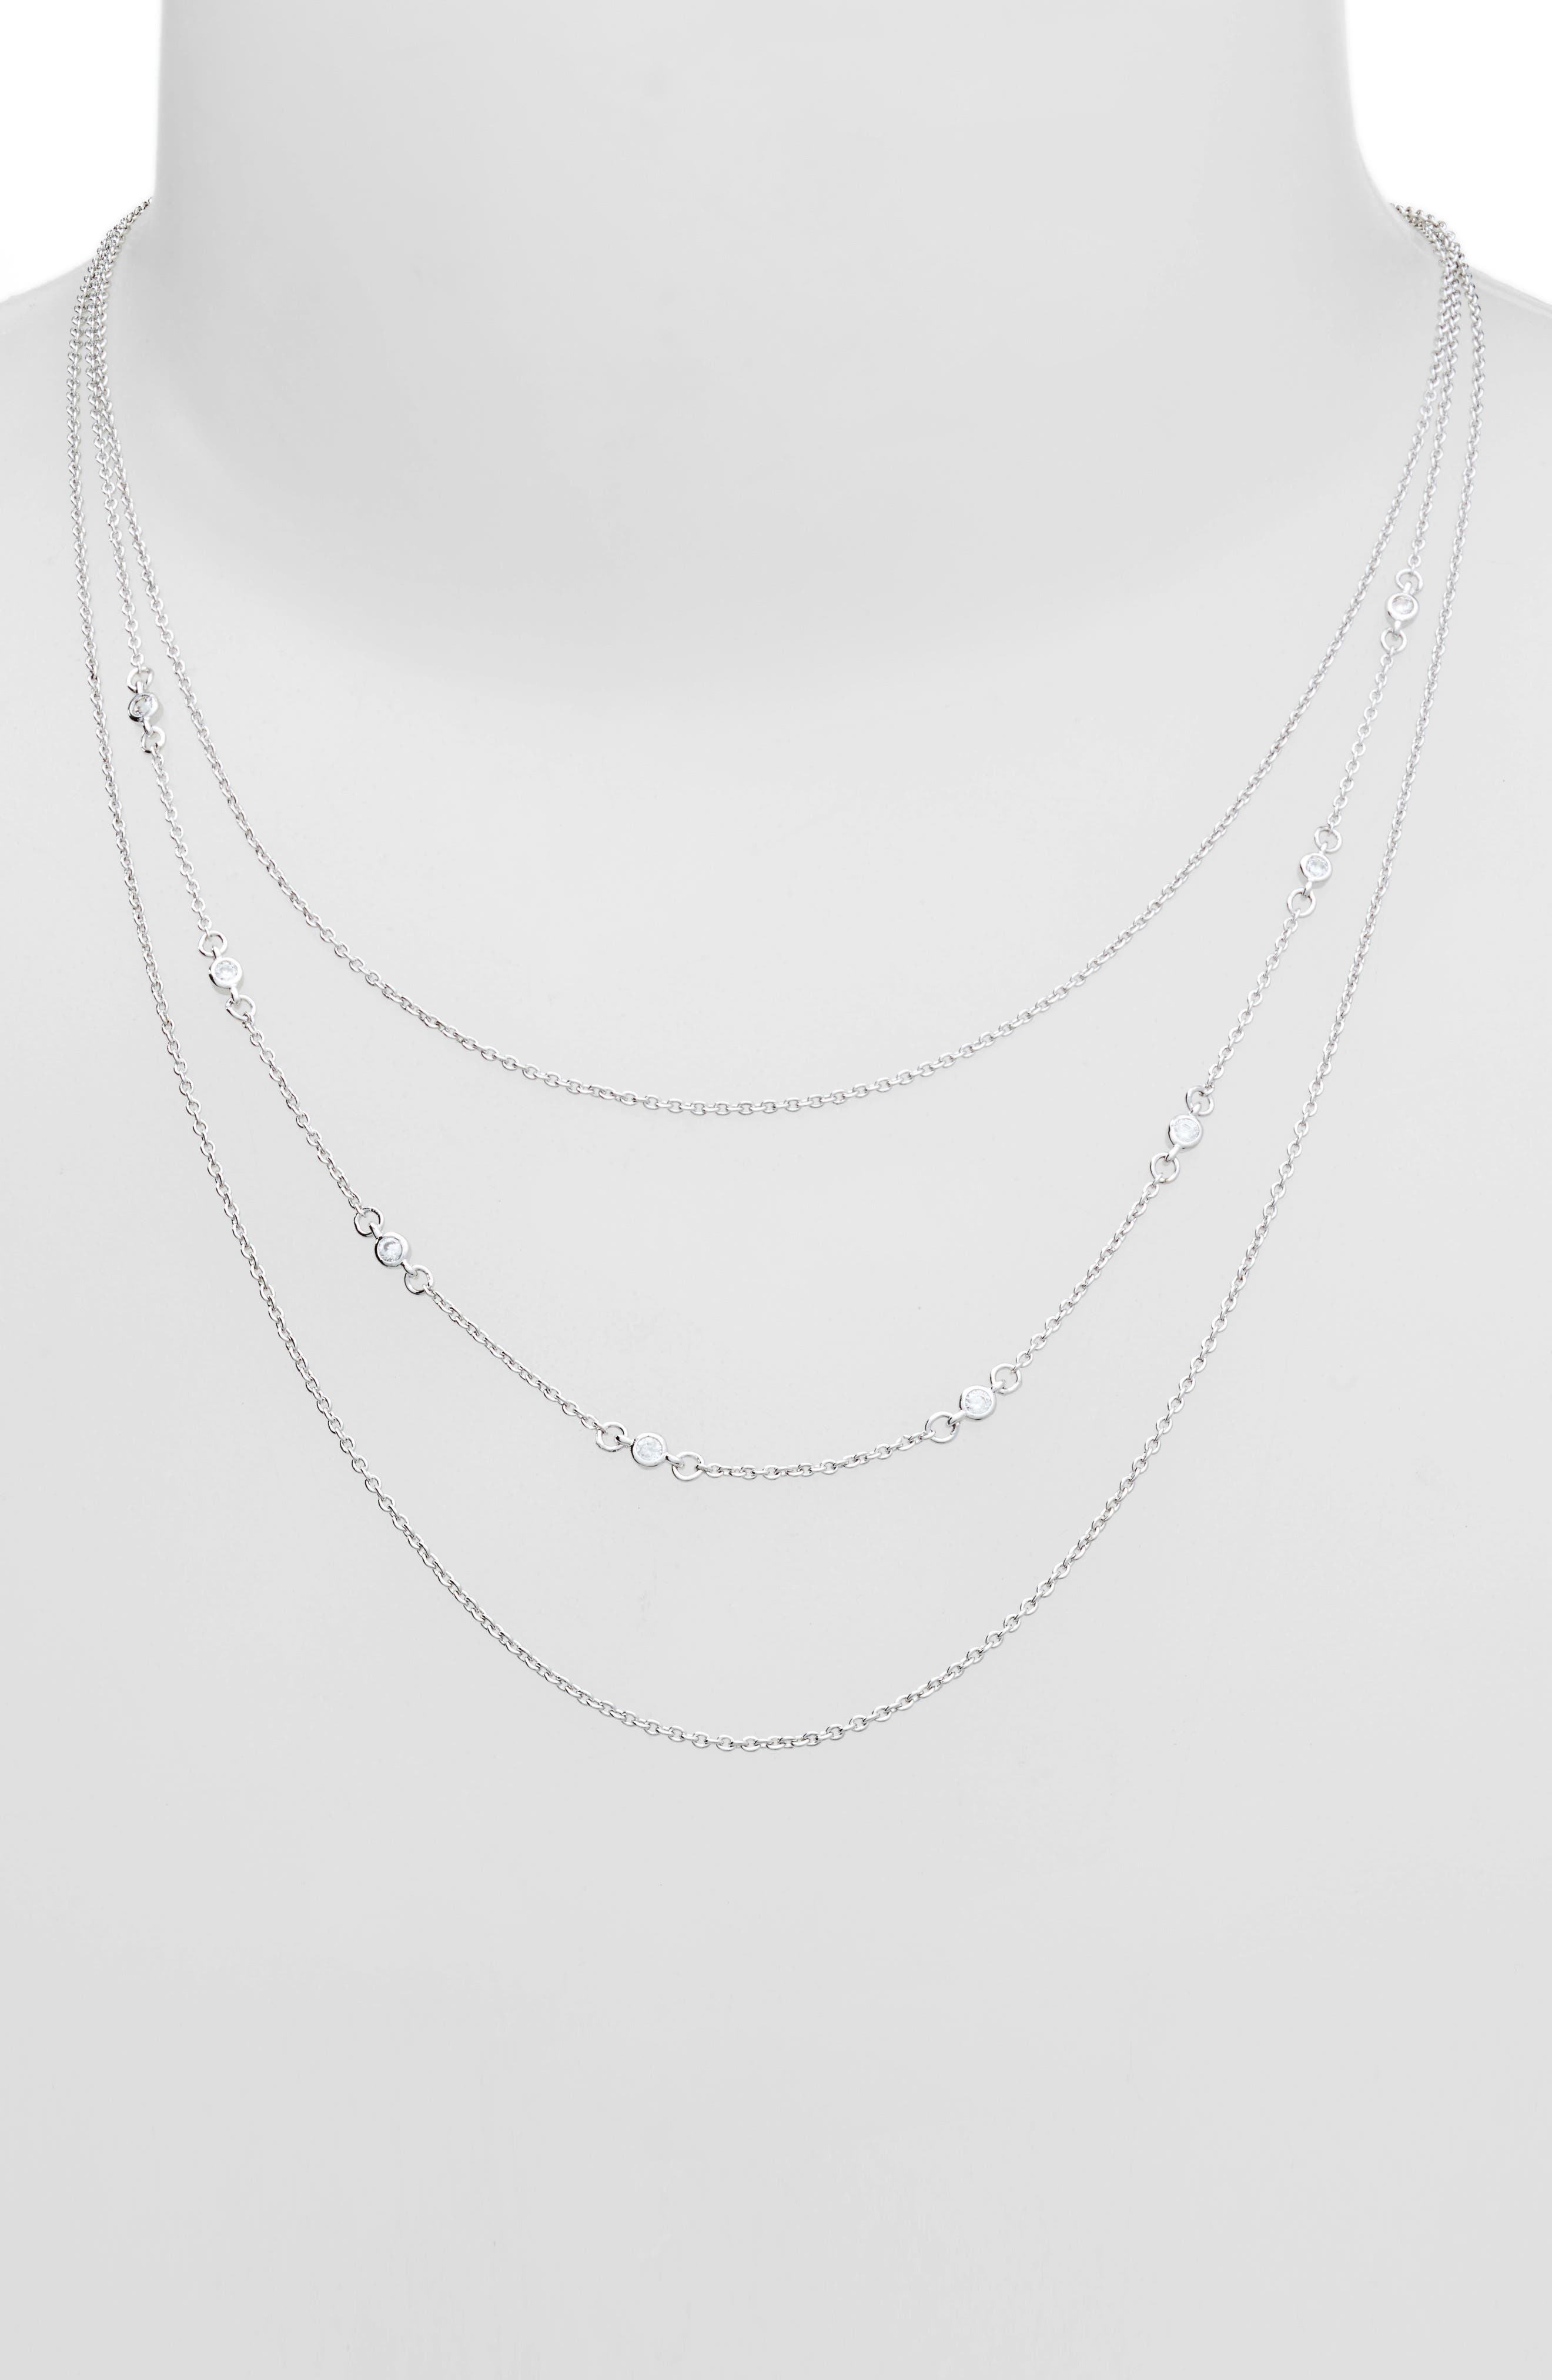 Shimmer Layered Necklace,                             Alternate thumbnail 2, color,                             SILVER